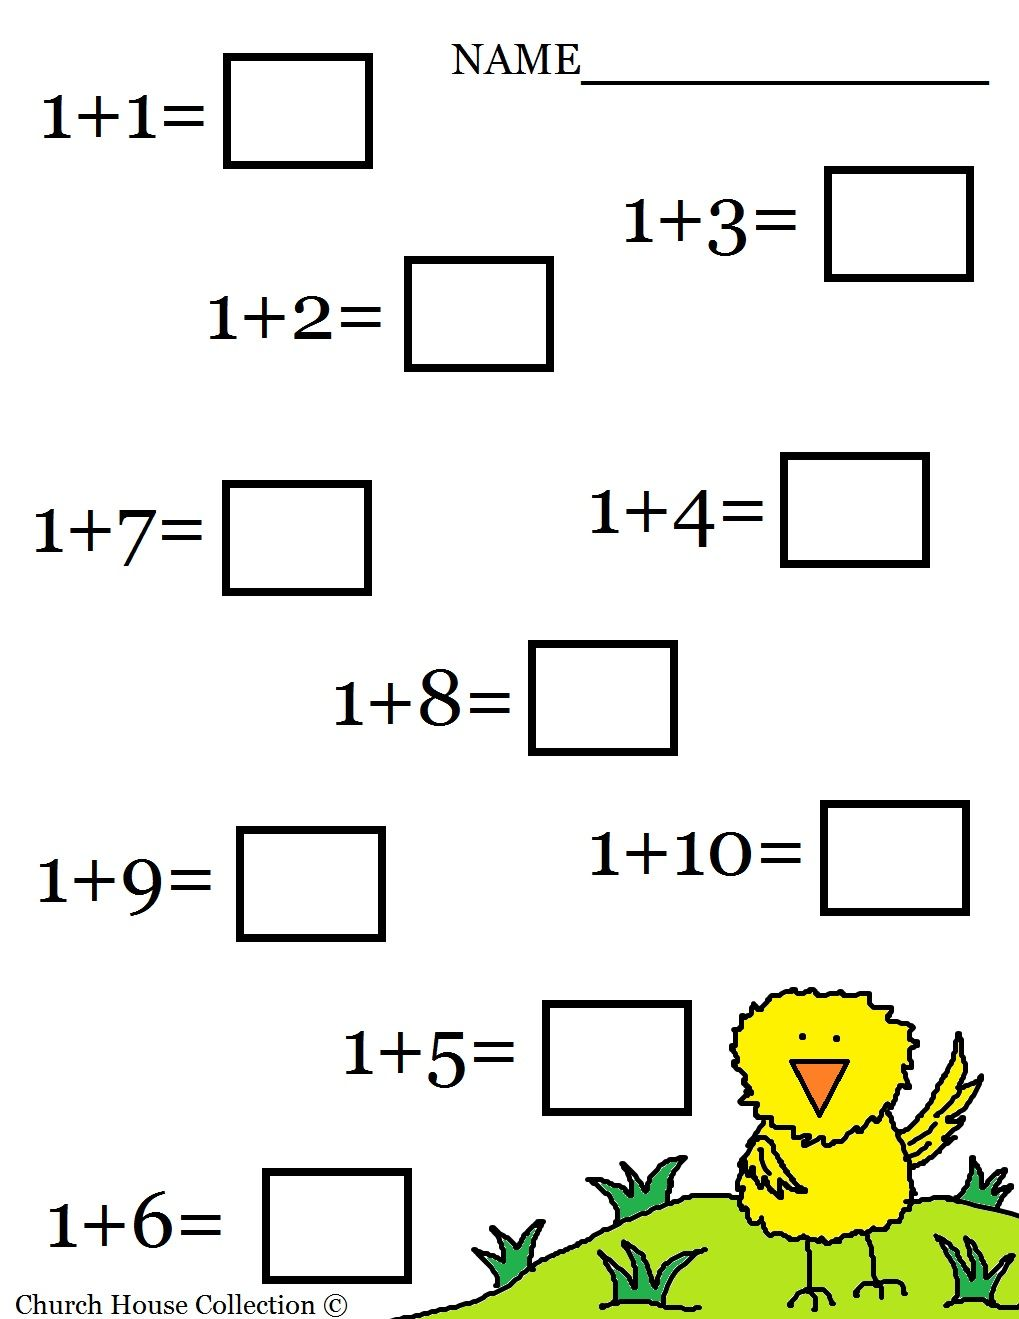 Weirdmailus  Surprising  Images About Worksheets  Math On Pinterest  Math Sheets  With Extraordinary  Images About Worksheets  Math On Pinterest  Math Sheets Math Worksheets For Kindergarten And Simple Addition With Appealing Ordinal Positions Worksheets Also Worksheet Generator Maths In Addition Worksheet On Future Tense And Maths Online Worksheets As Well As Cube Nets Worksheet Additionally Area Of A Trapezium Worksheet From Pinterestcom With Weirdmailus  Extraordinary  Images About Worksheets  Math On Pinterest  Math Sheets  With Appealing  Images About Worksheets  Math On Pinterest  Math Sheets Math Worksheets For Kindergarten And Simple Addition And Surprising Ordinal Positions Worksheets Also Worksheet Generator Maths In Addition Worksheet On Future Tense From Pinterestcom